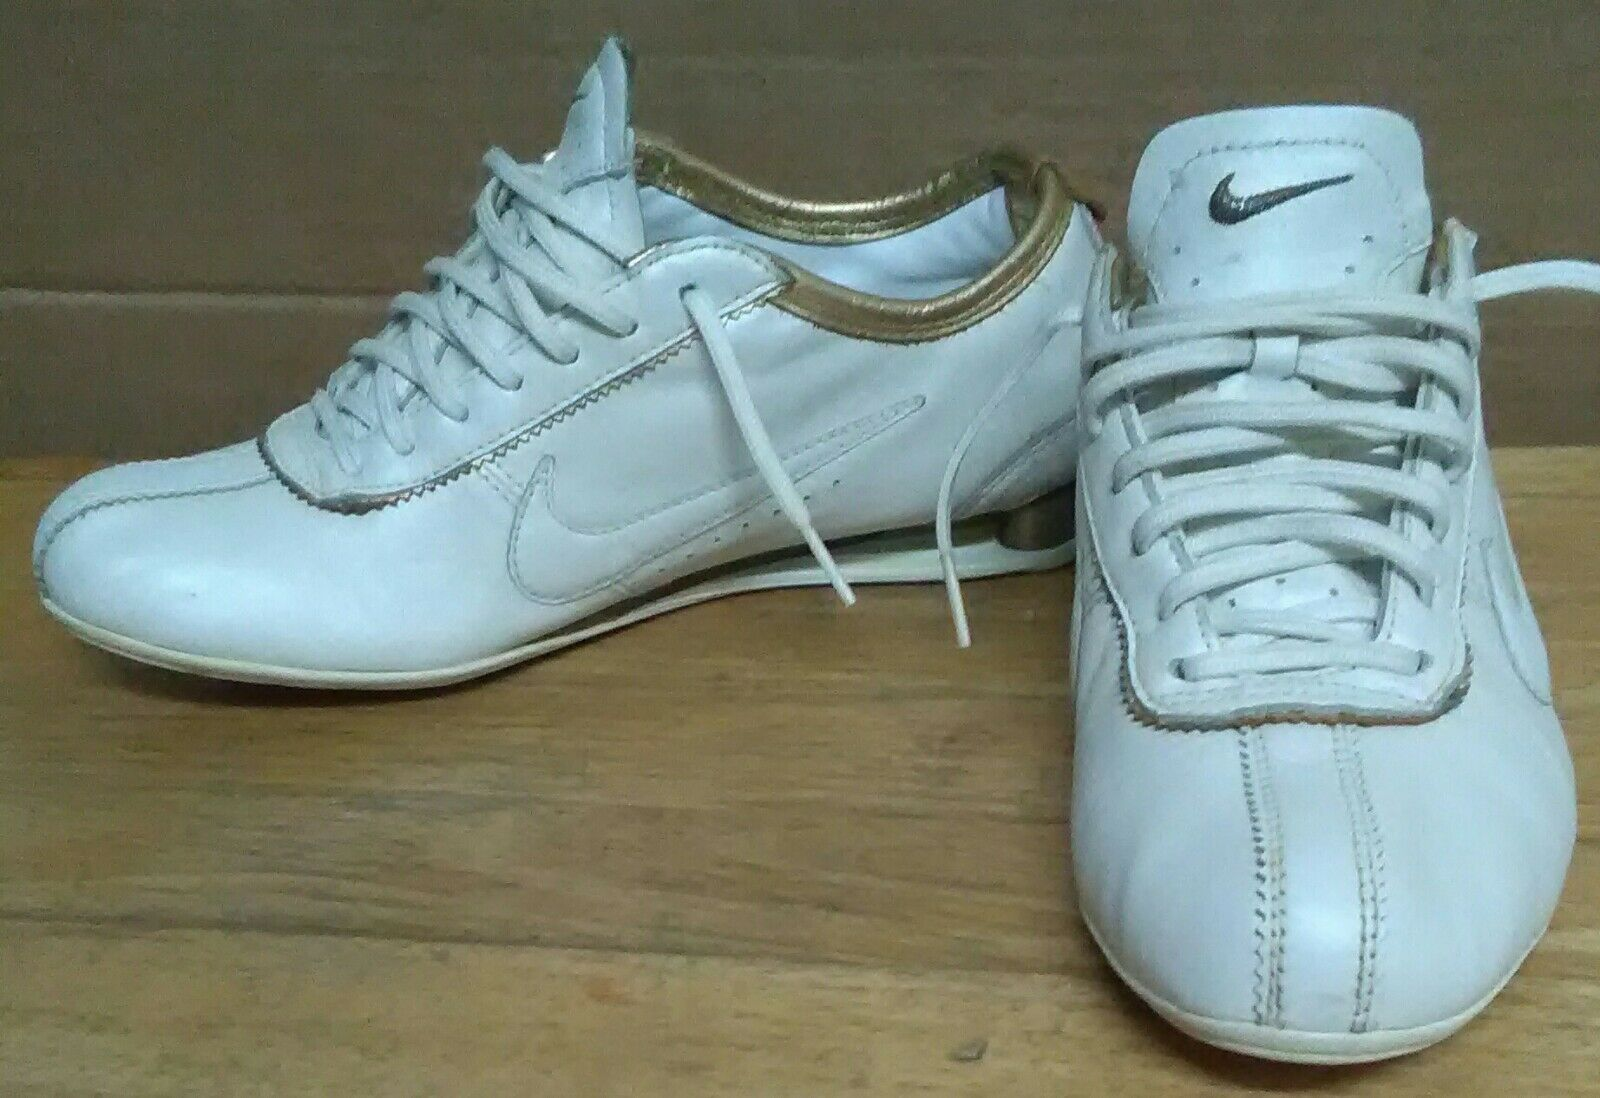 Nike ID ID ID Rivalry 2007 Shox Leather White gold Sneakers  Womens Size 7 2d32a8